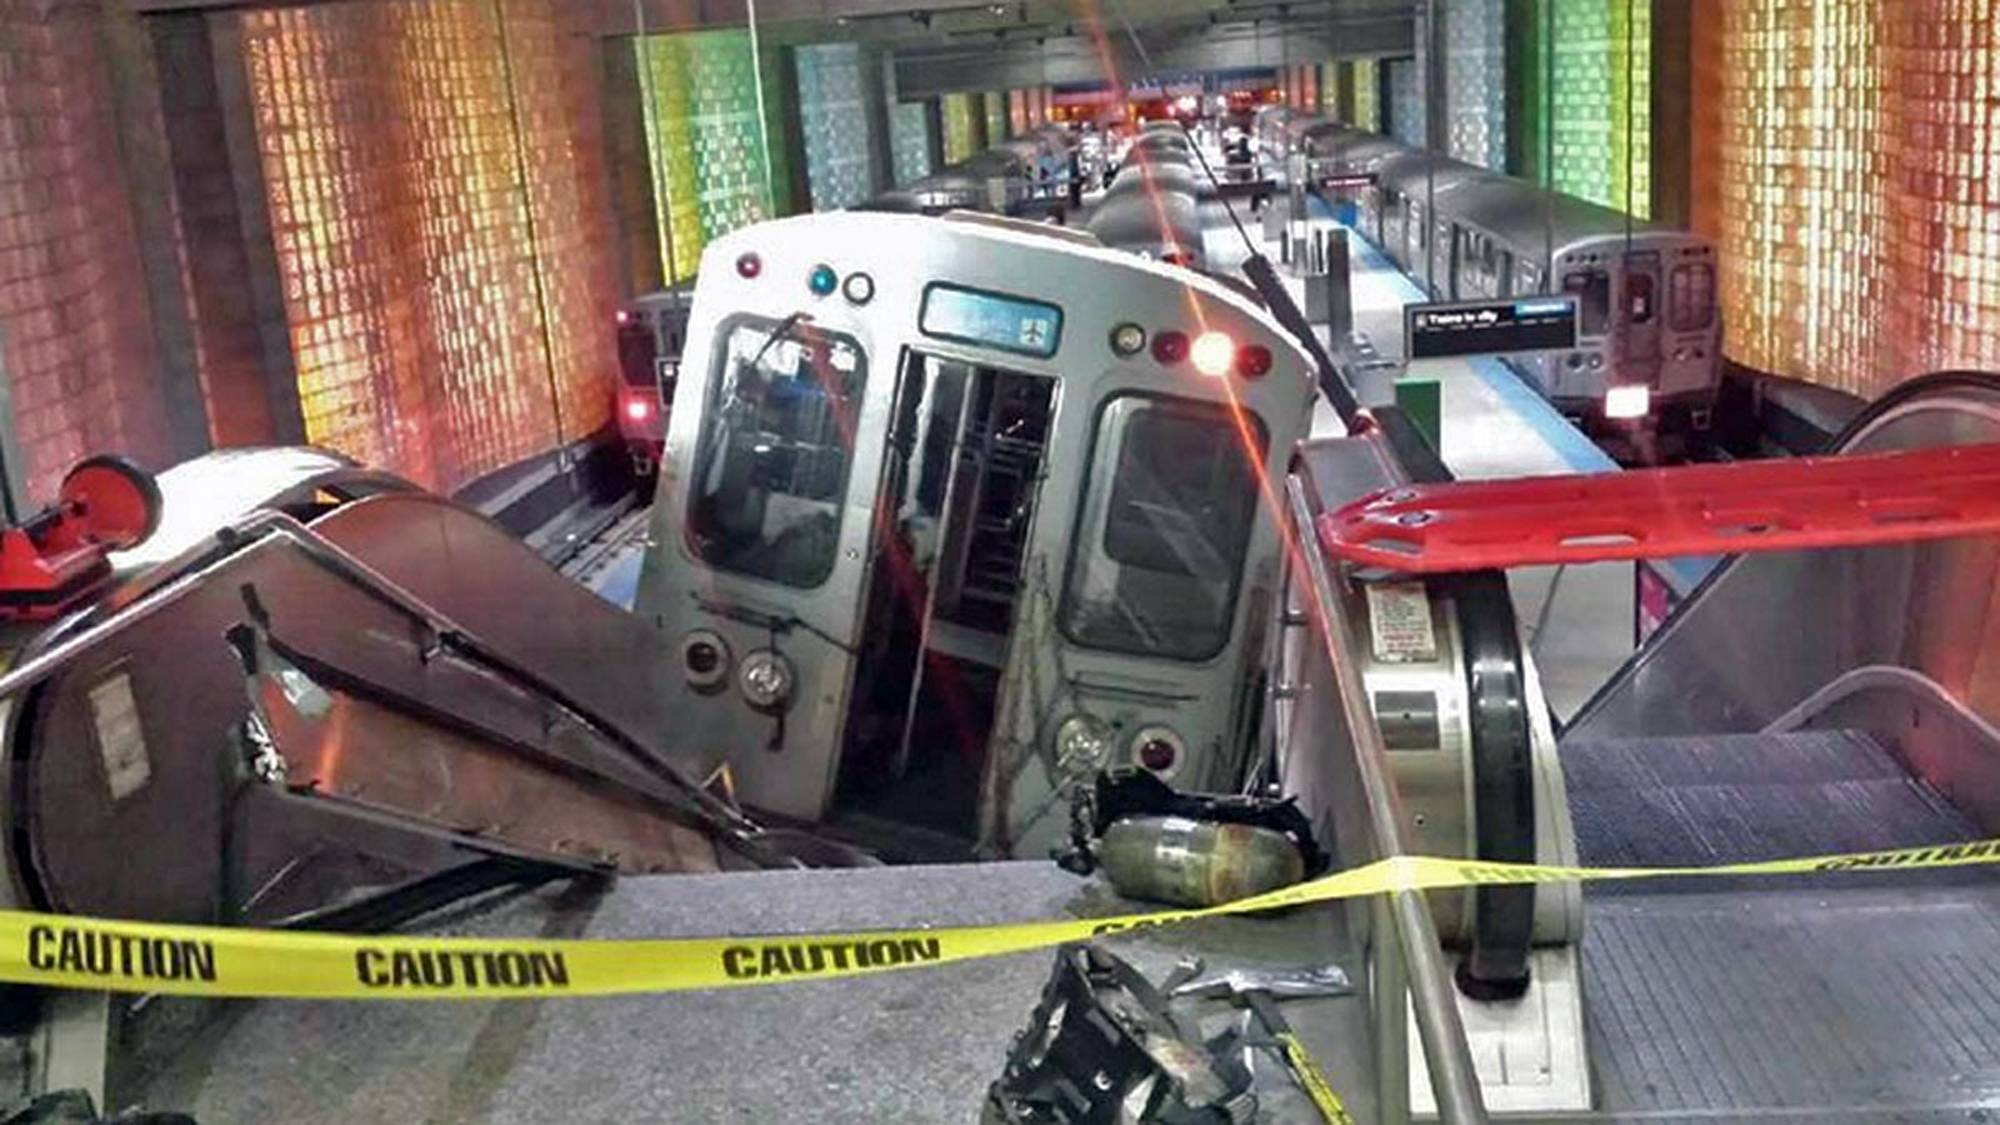 A Chicago Transit Authority train car rests on an escalator at the O'Hare Airport station after it derailed early Monday. More than 30 people were injured.